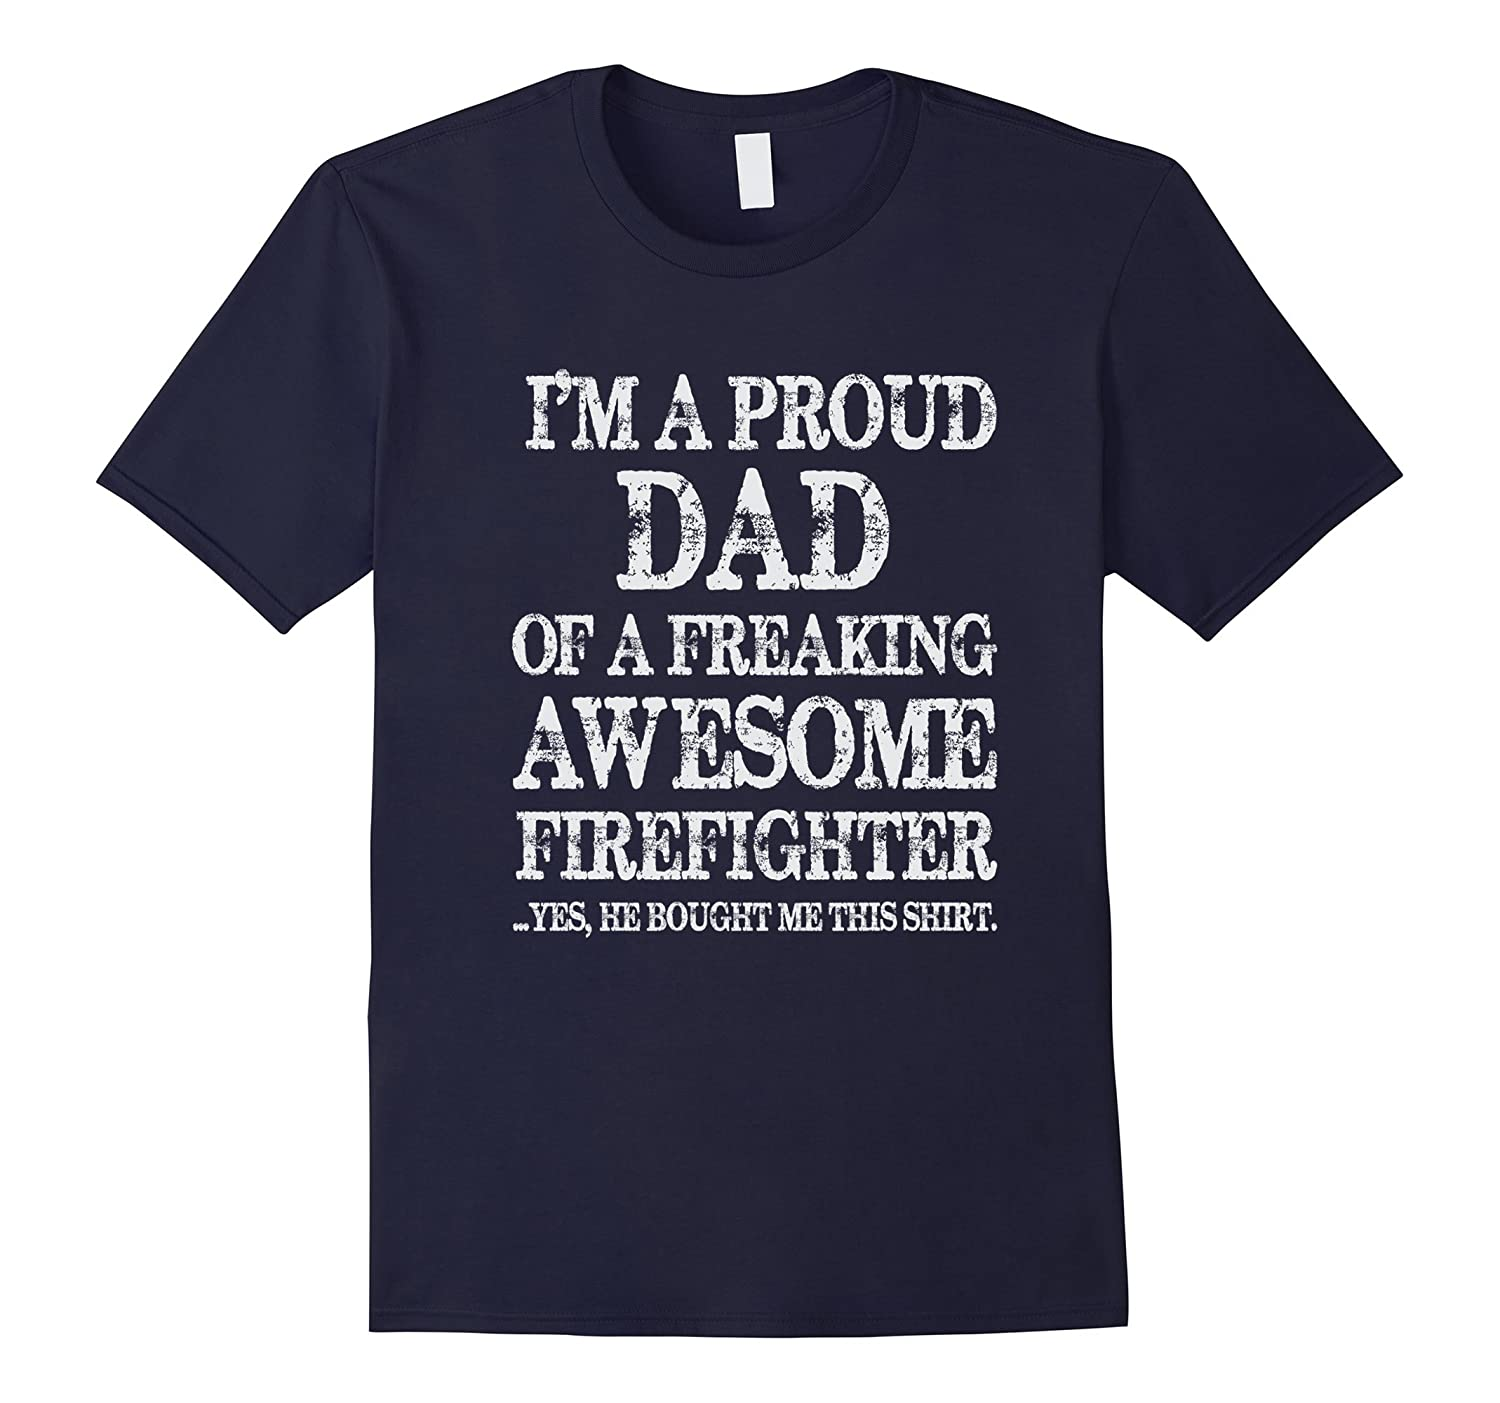 I'm a proud dad of a freaking awesome firefighter tshirts